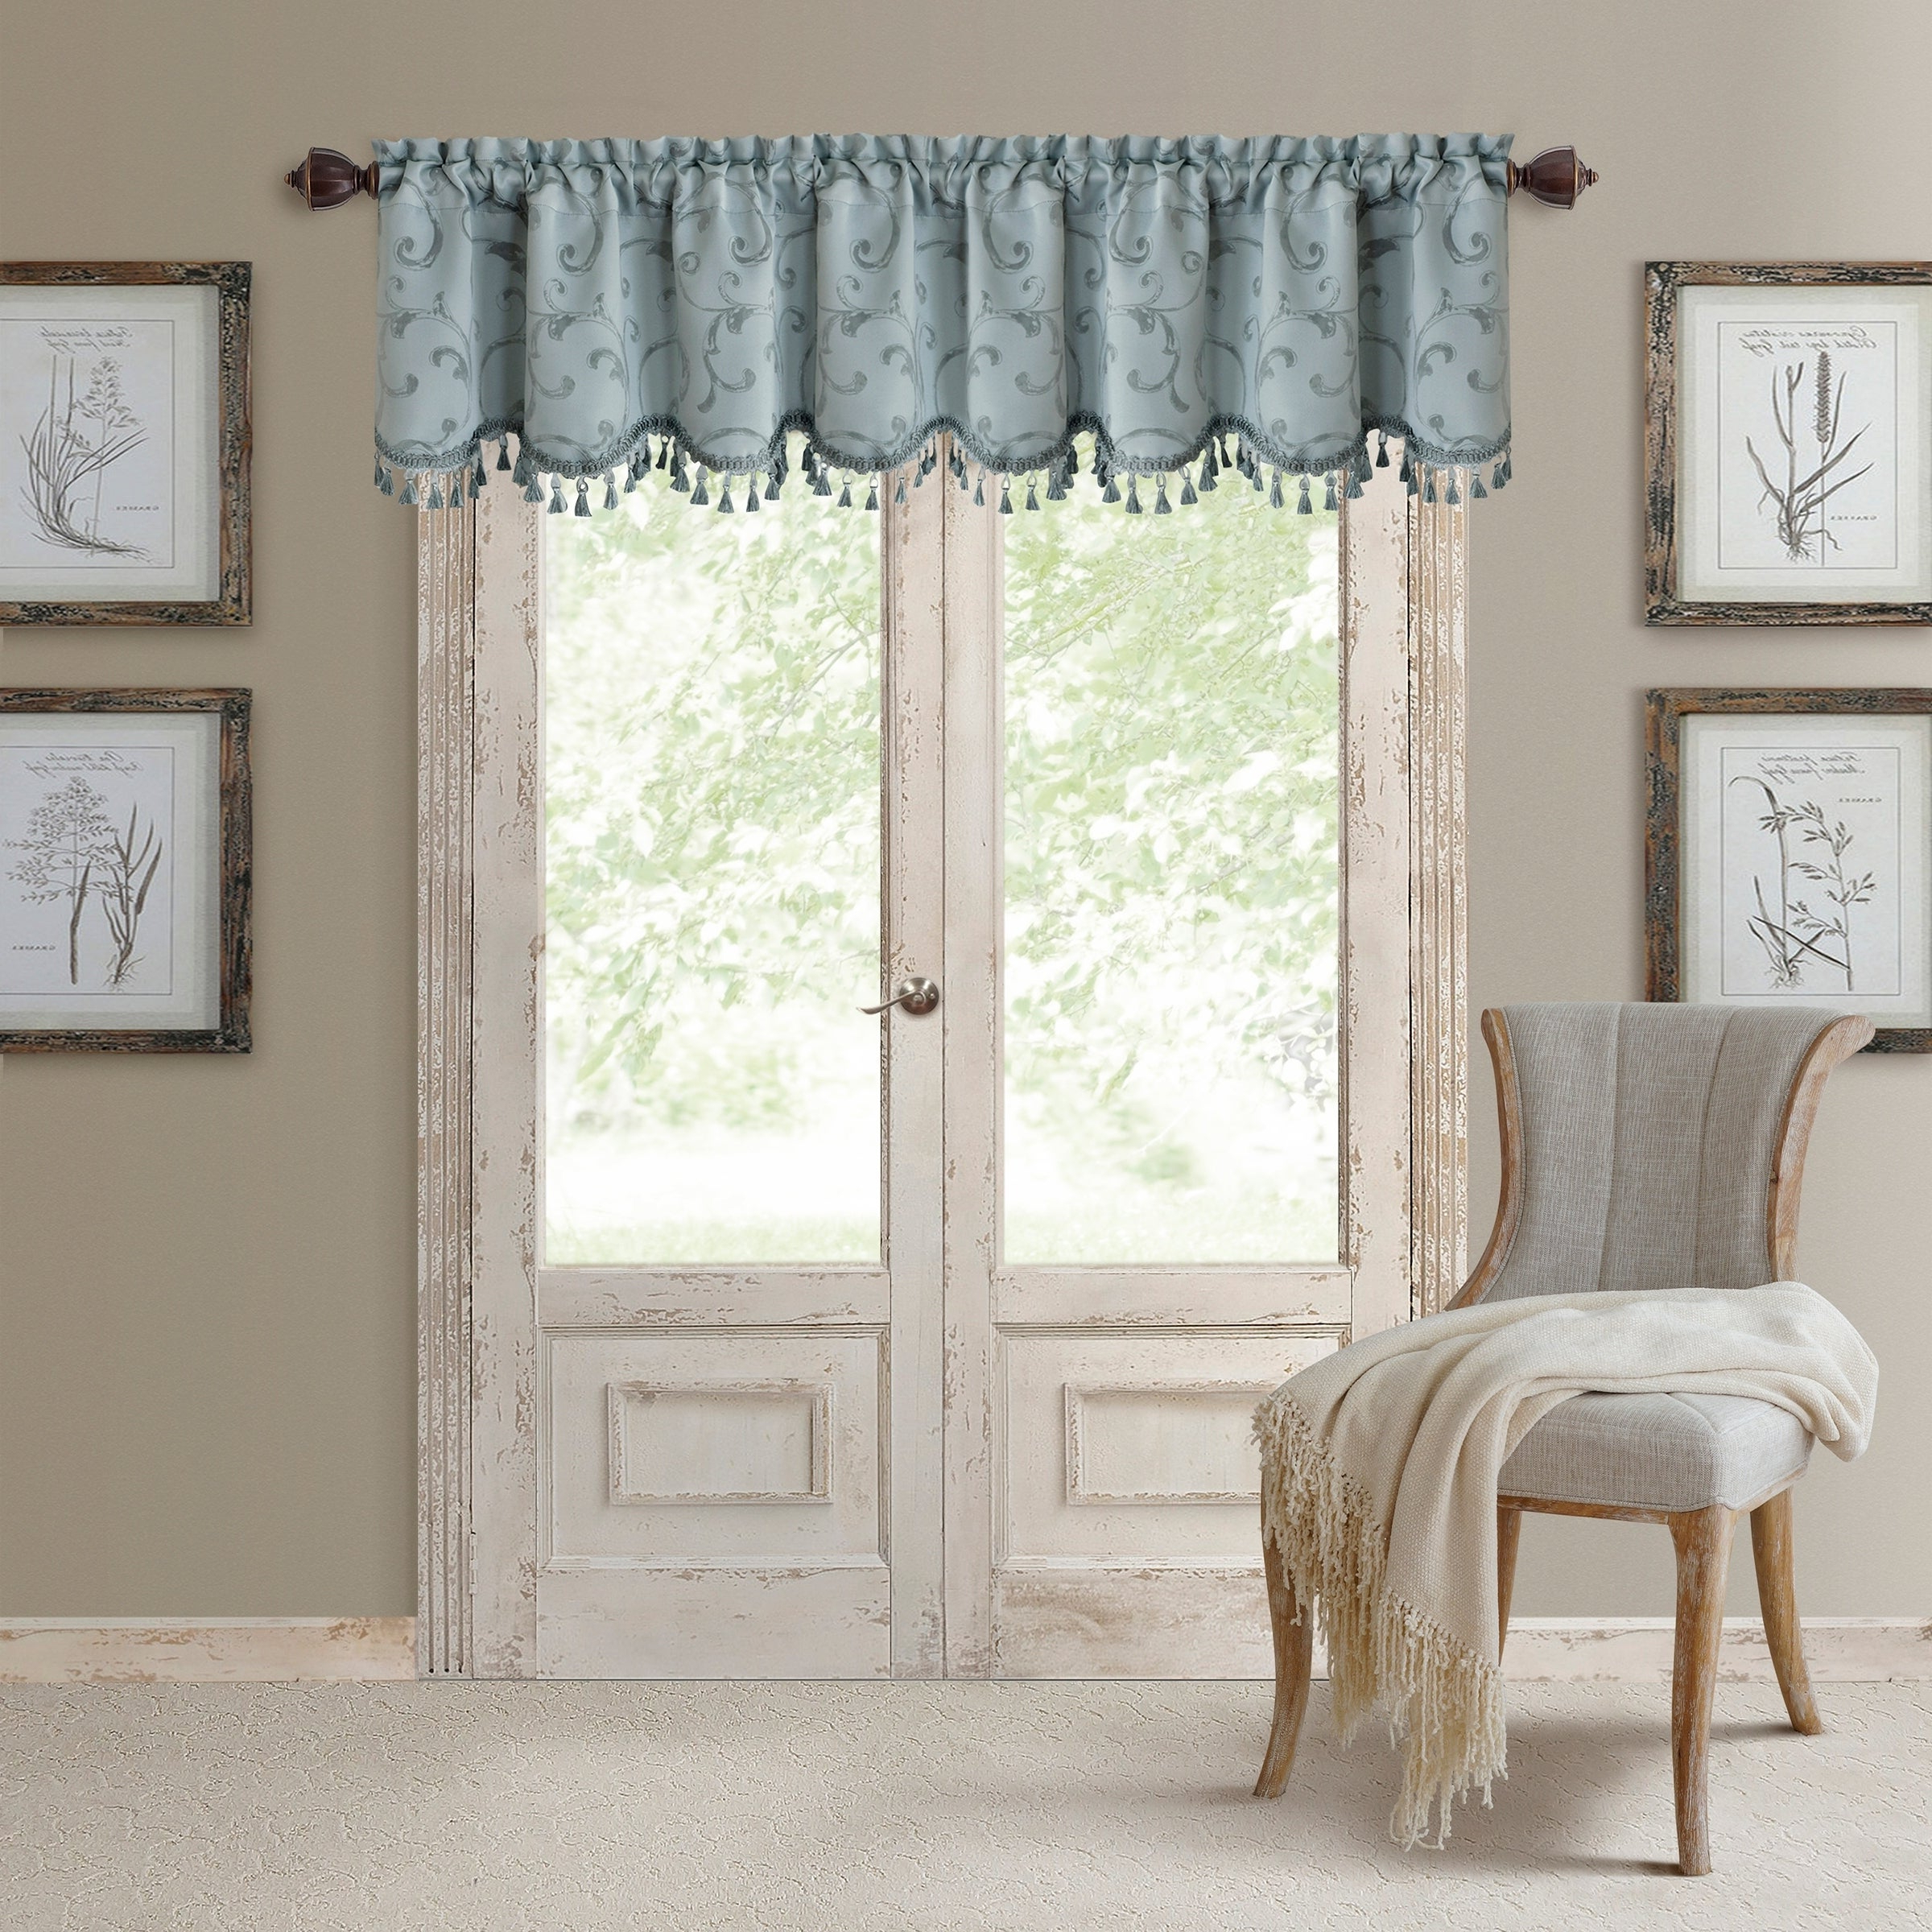 Elrene Mia Jacquard Blackout Curtain Panels In Most Recent Elrene Mia Jacquard Blackout Scallop Window Valance (Gallery 6 of 20)